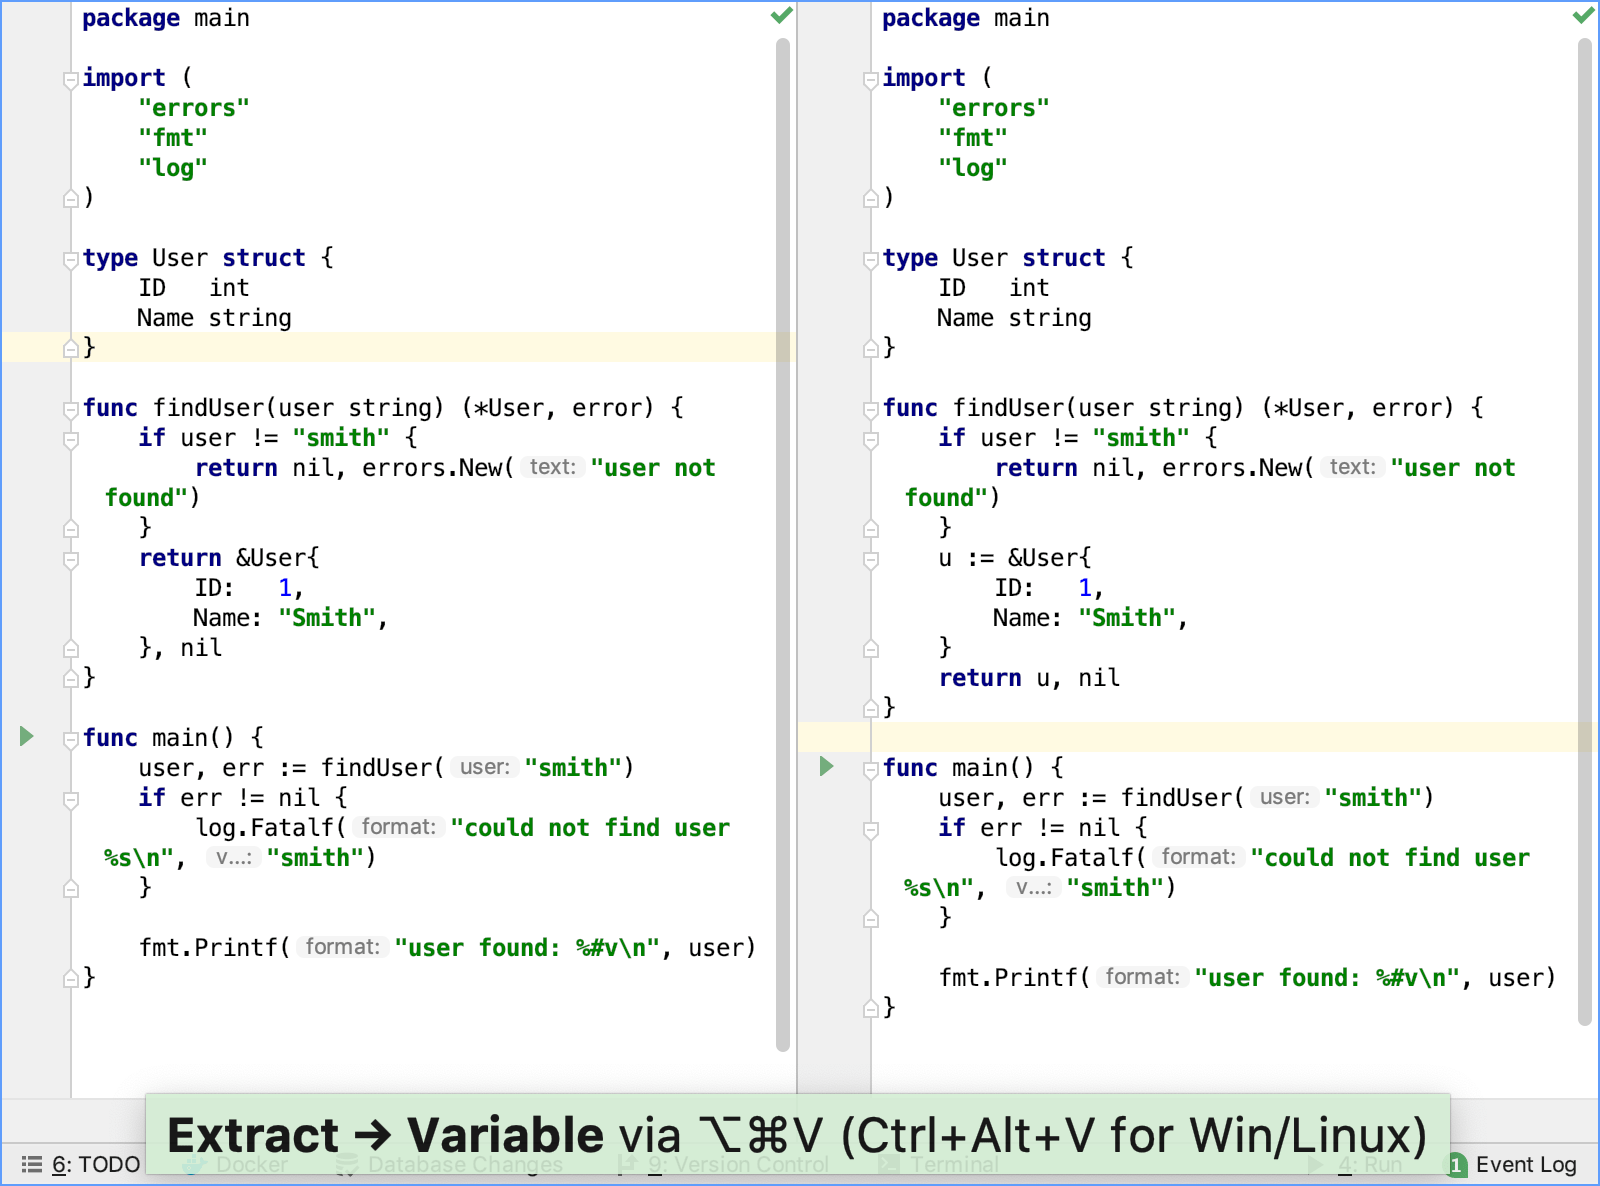 Extract a variable